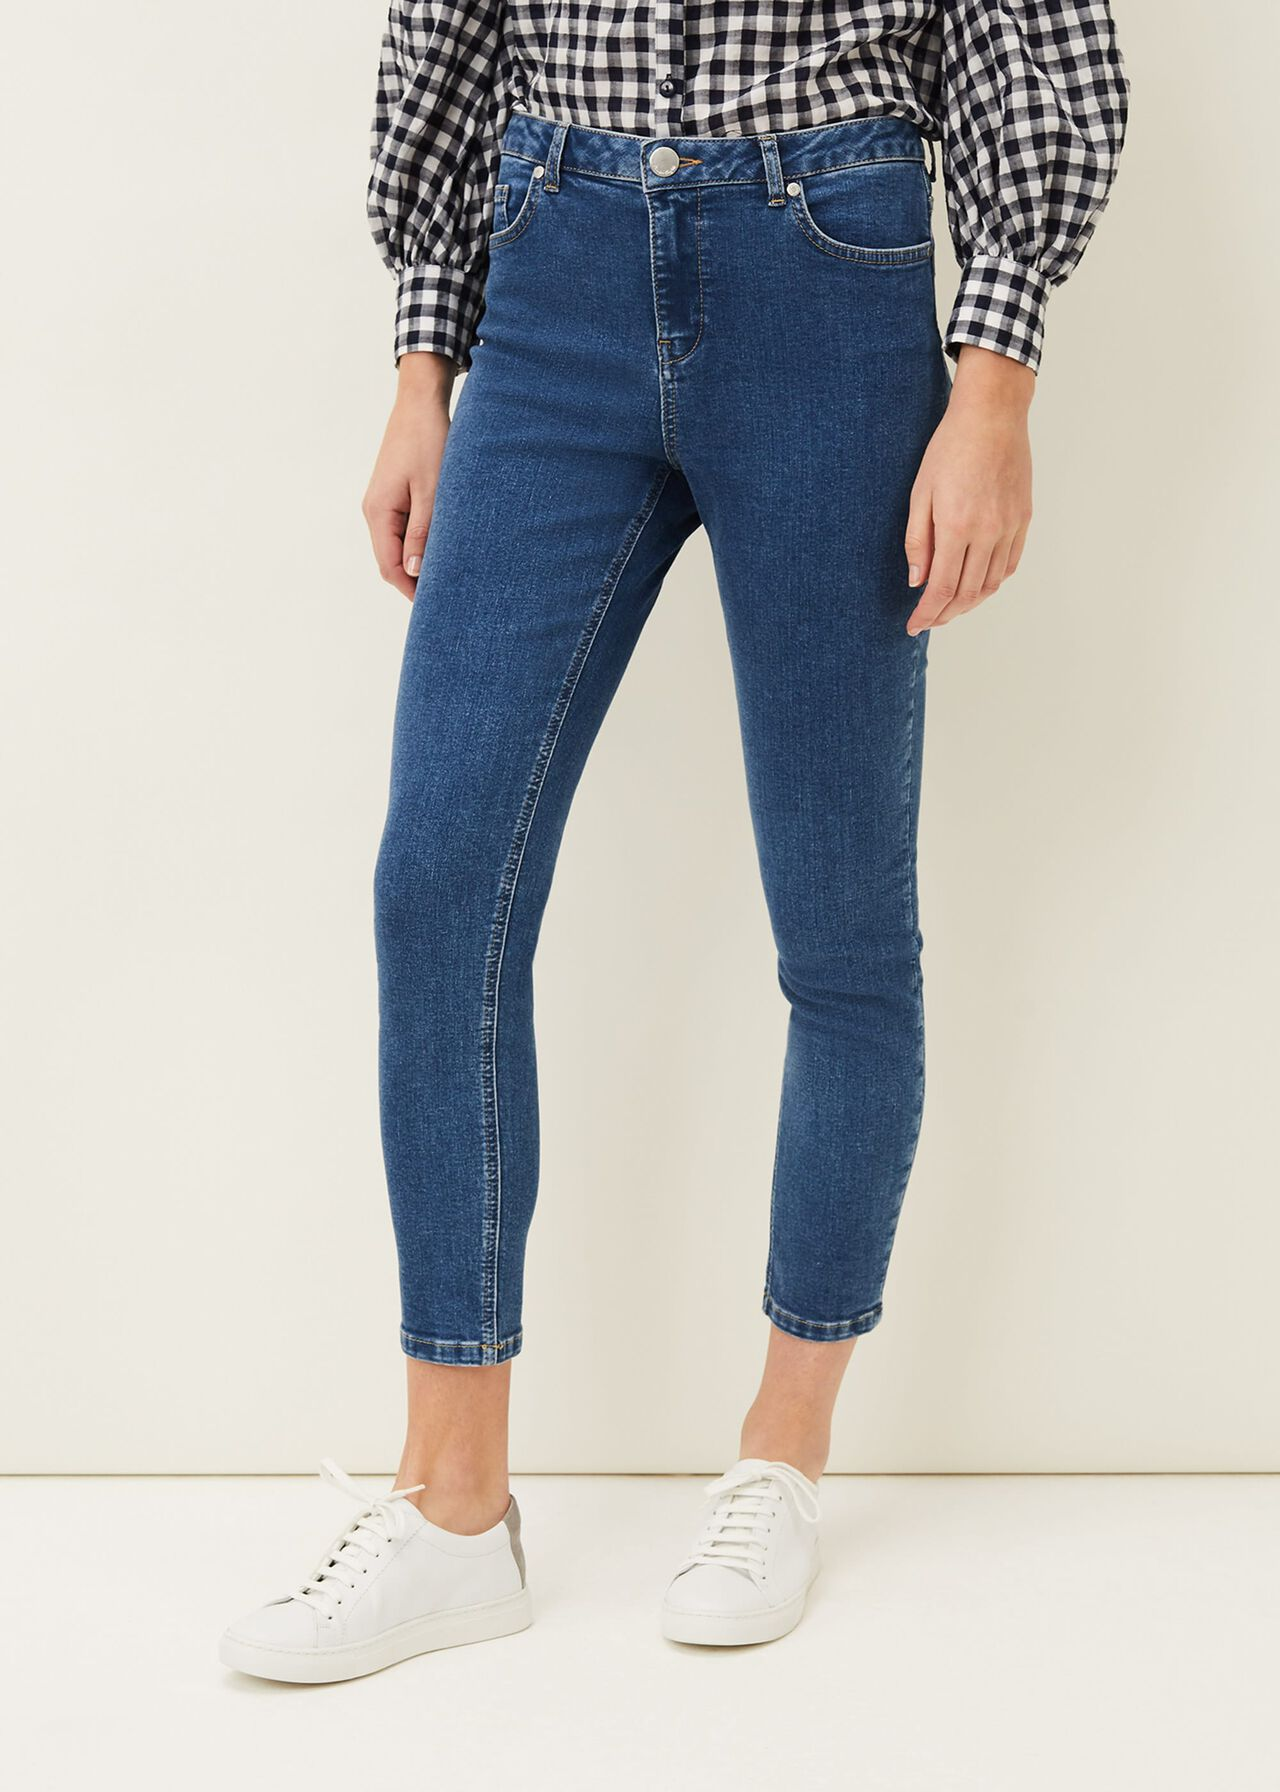 ${product-id}-Pax Jeans Outfit--${view-type}